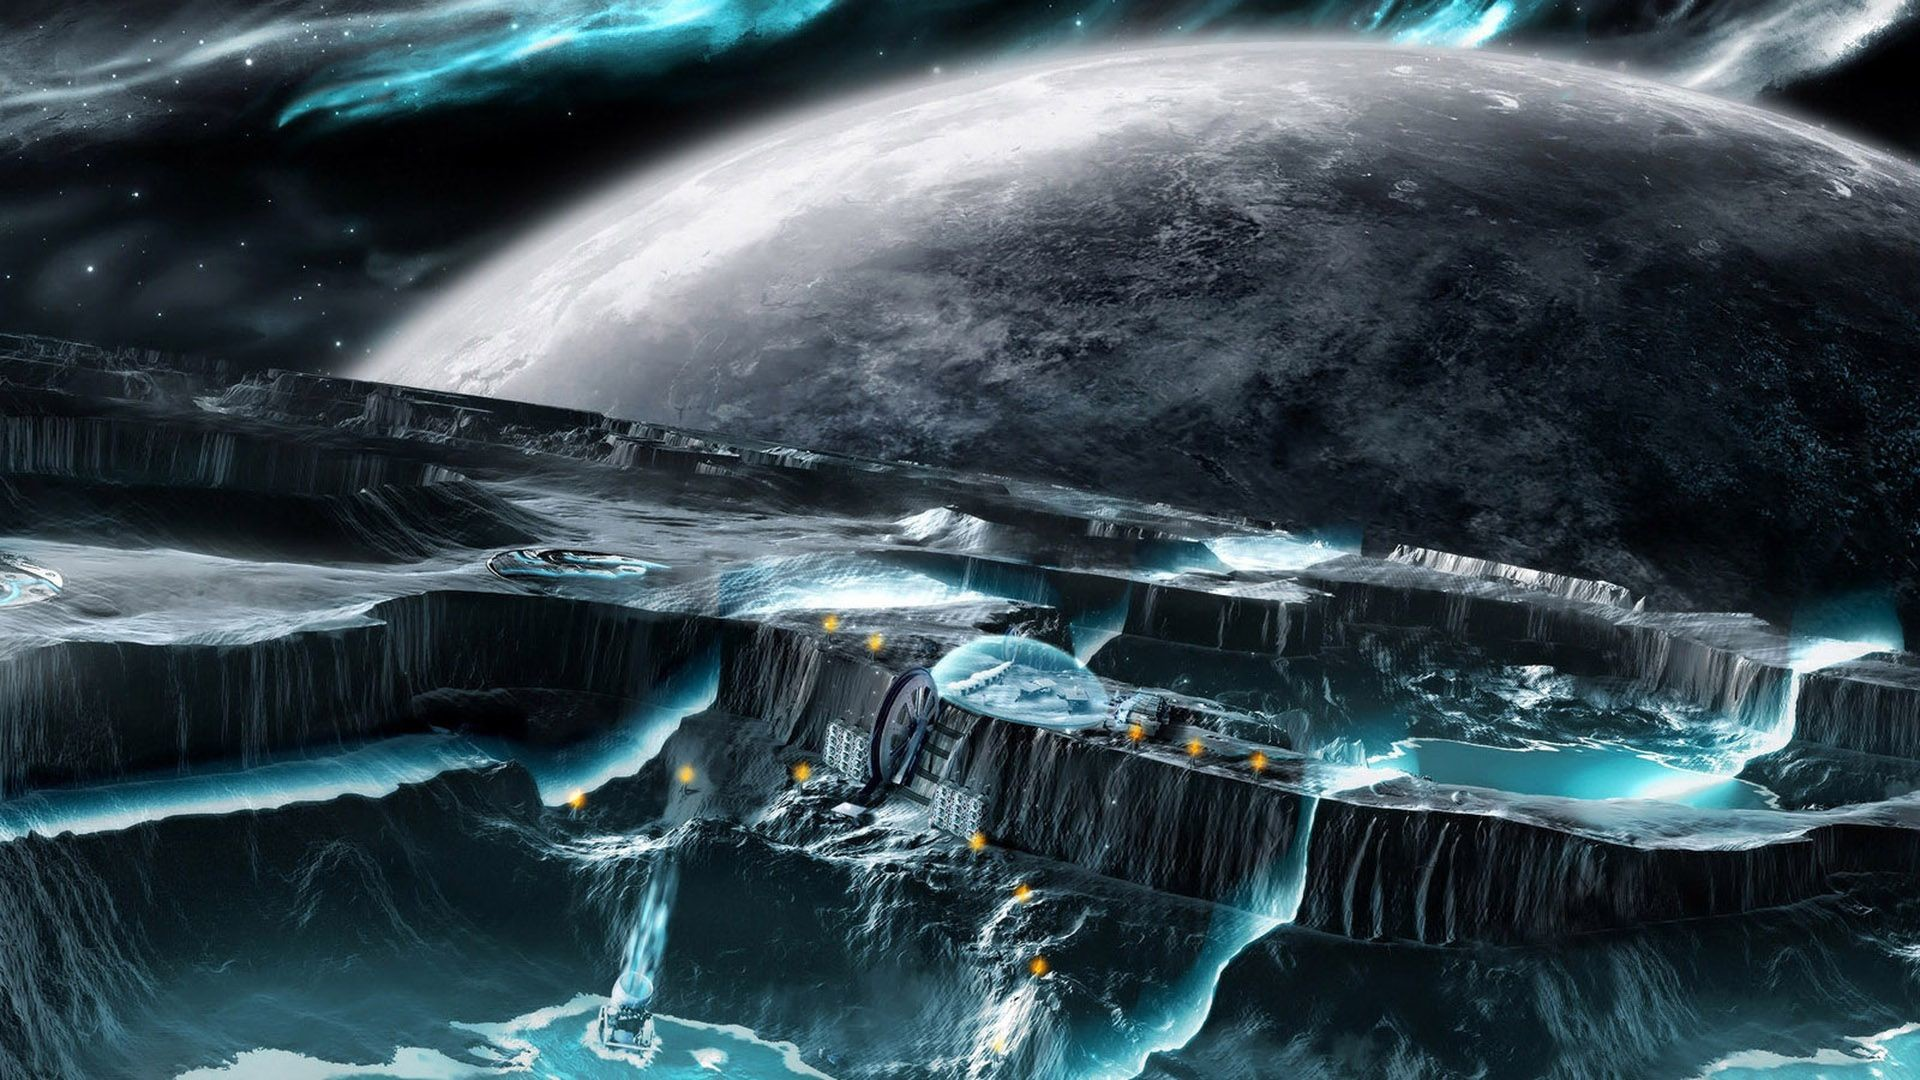 Res: 1920x1080, Space Fantasy HD Desktop Wallpapers : Get Free top quality Space Fantasy HD  Desktop Wallpapers for